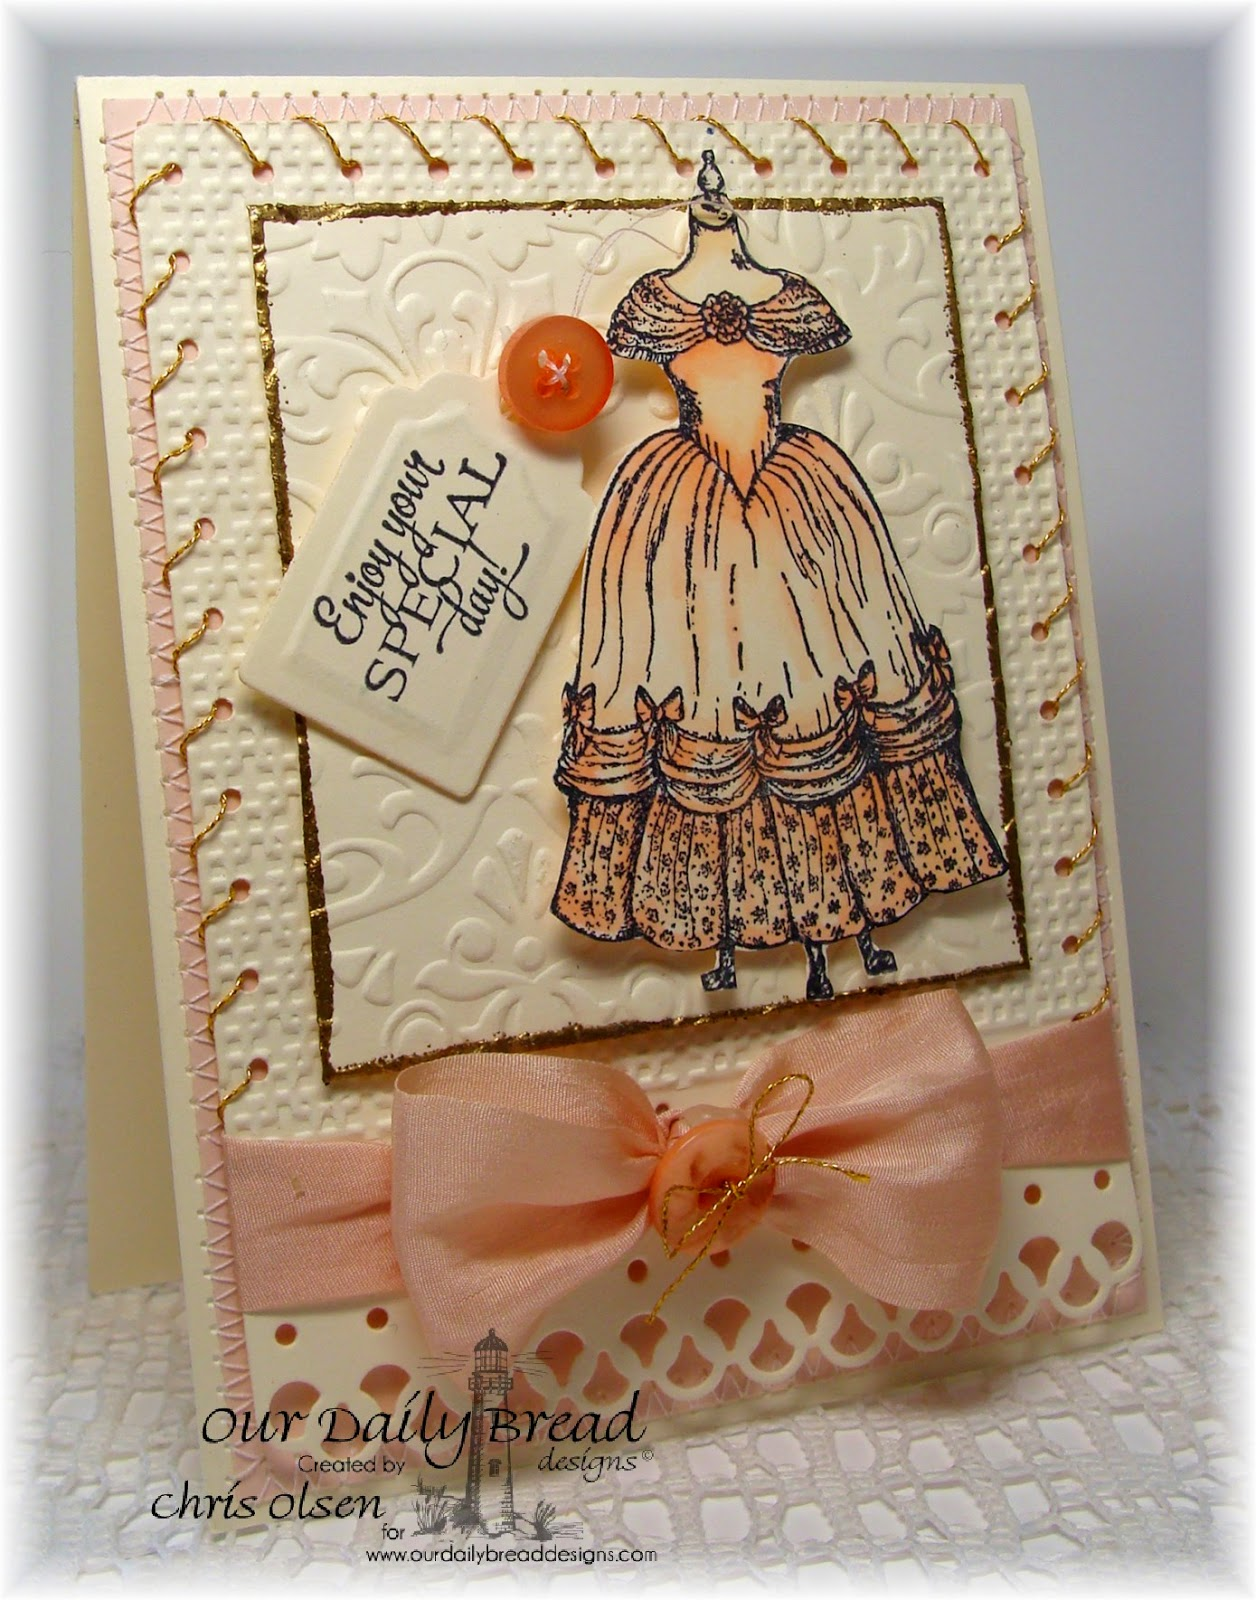 Our Daily Bread Designs, Victoria, Birthday Doily, Recipe and Tags Die, Glowbug, Designer-Chris Olsen